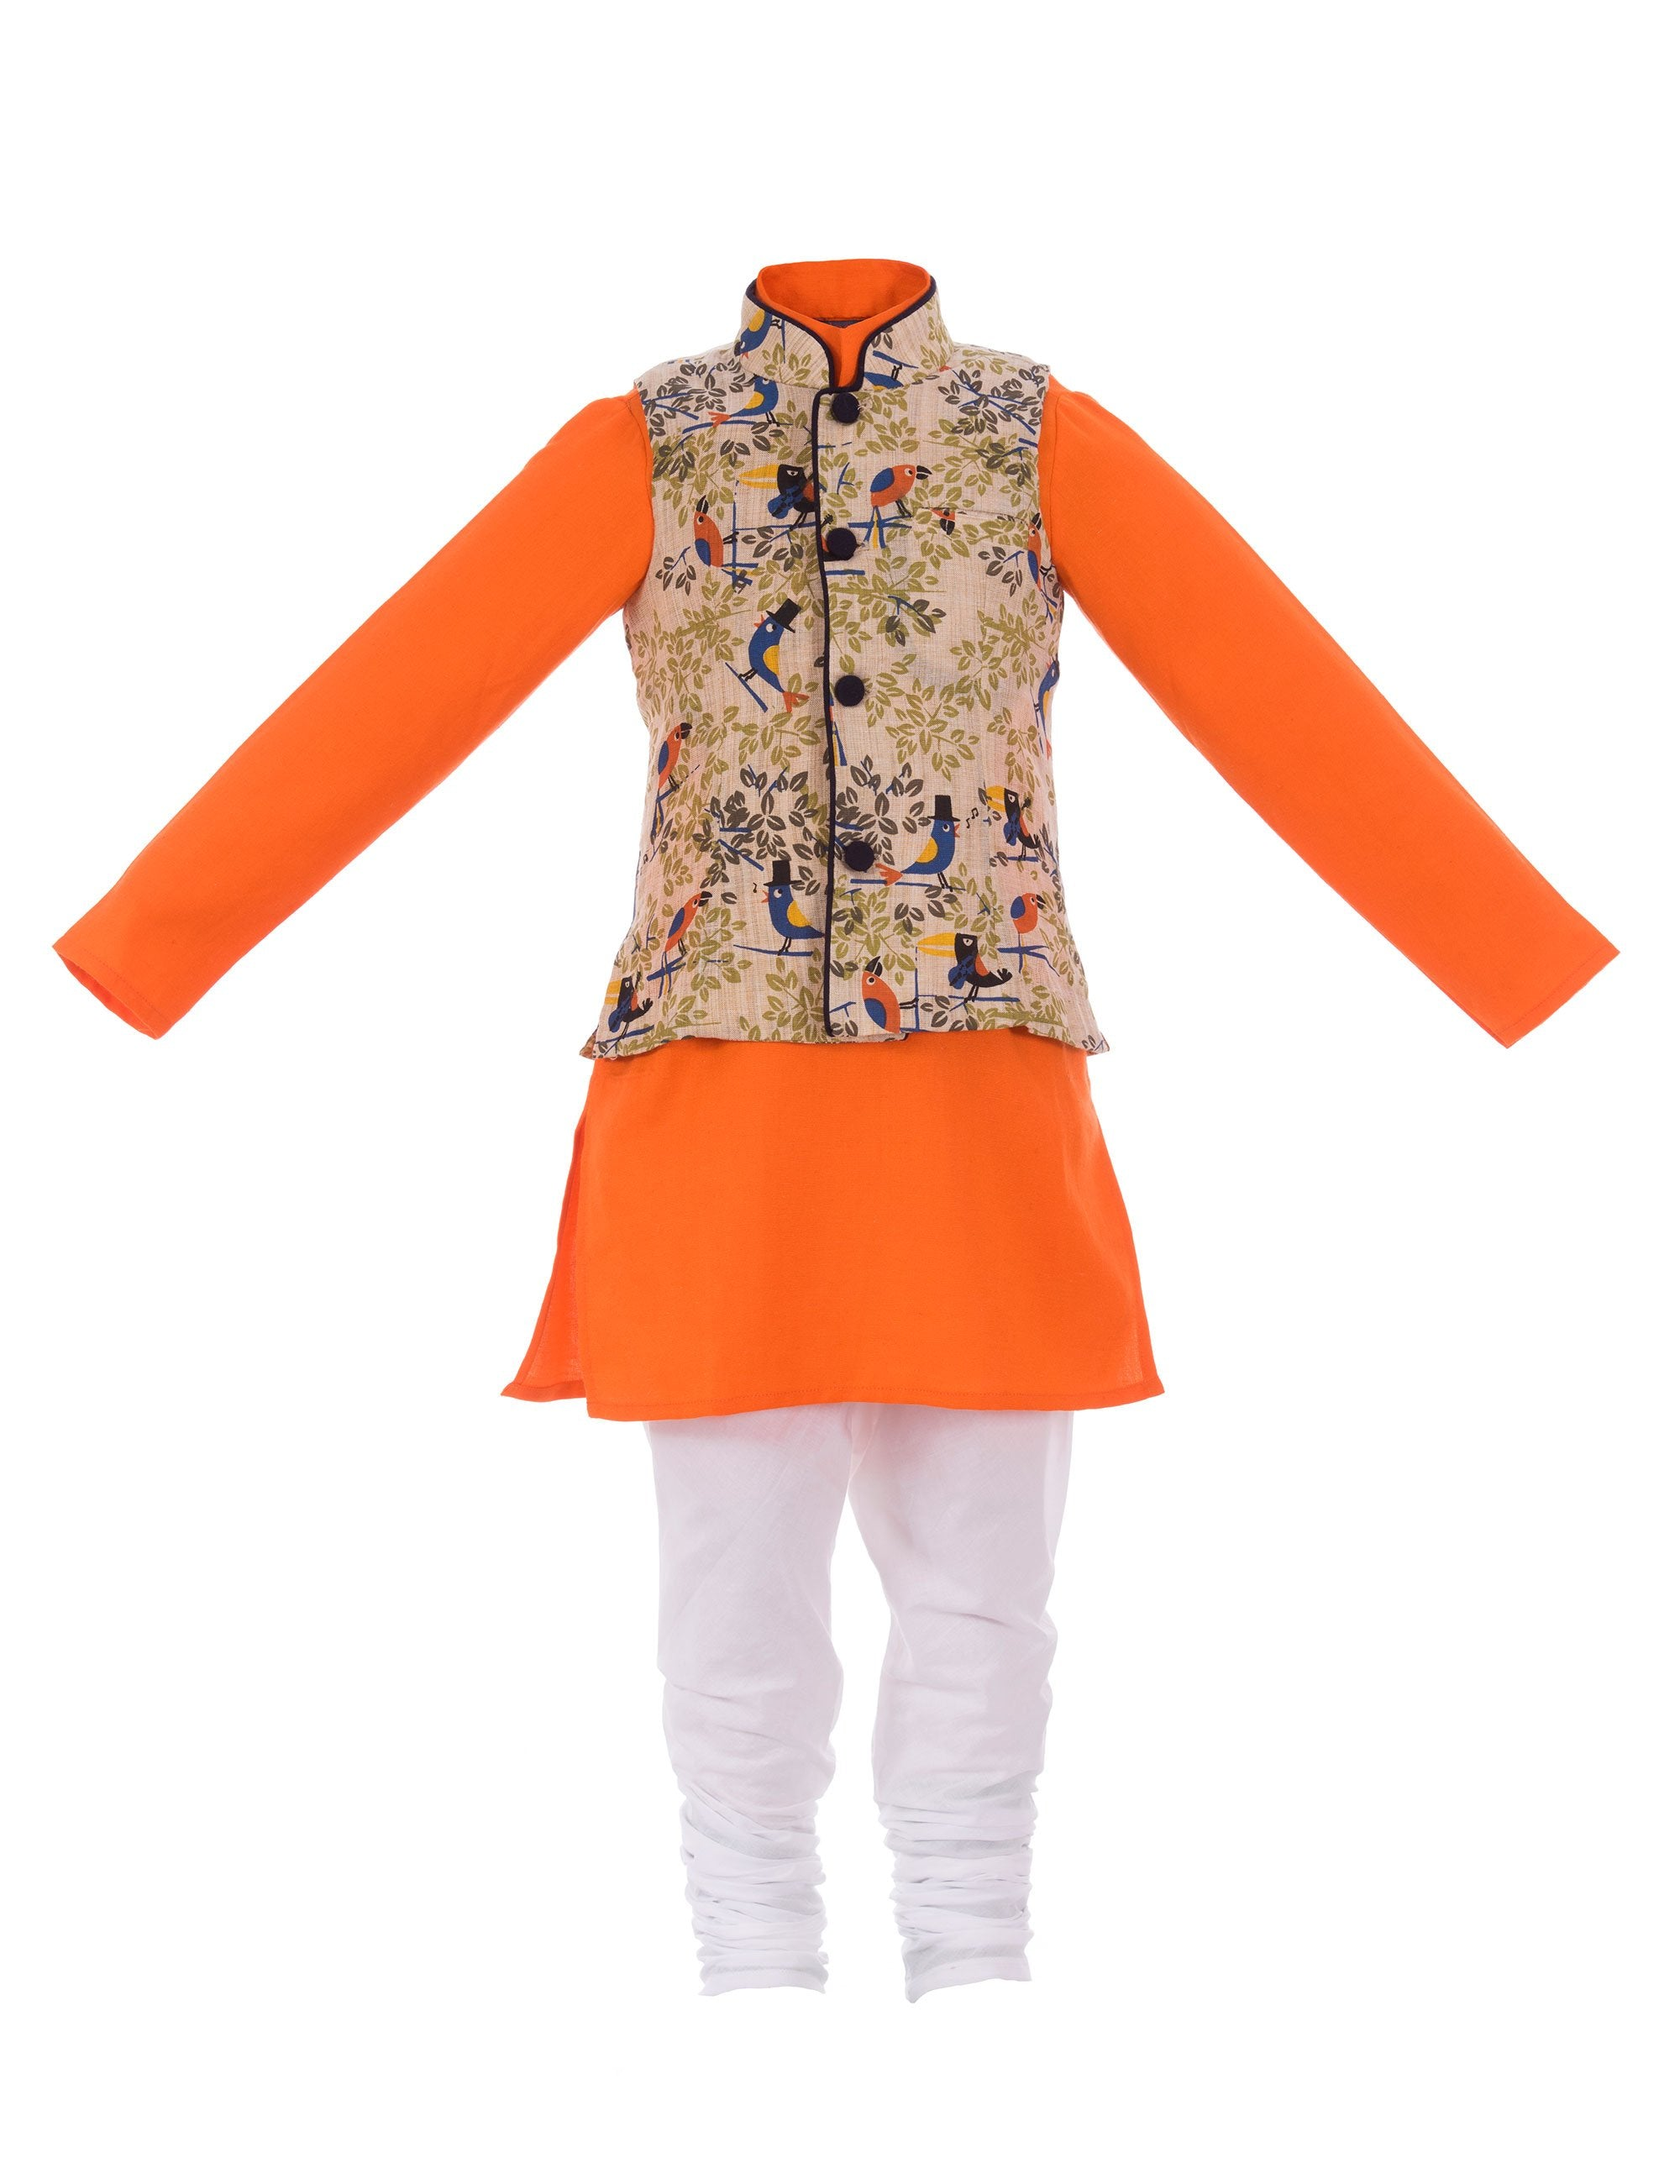 Khadi Kurta with Bird Print Nehru Jacket in Orange Colour for Boys